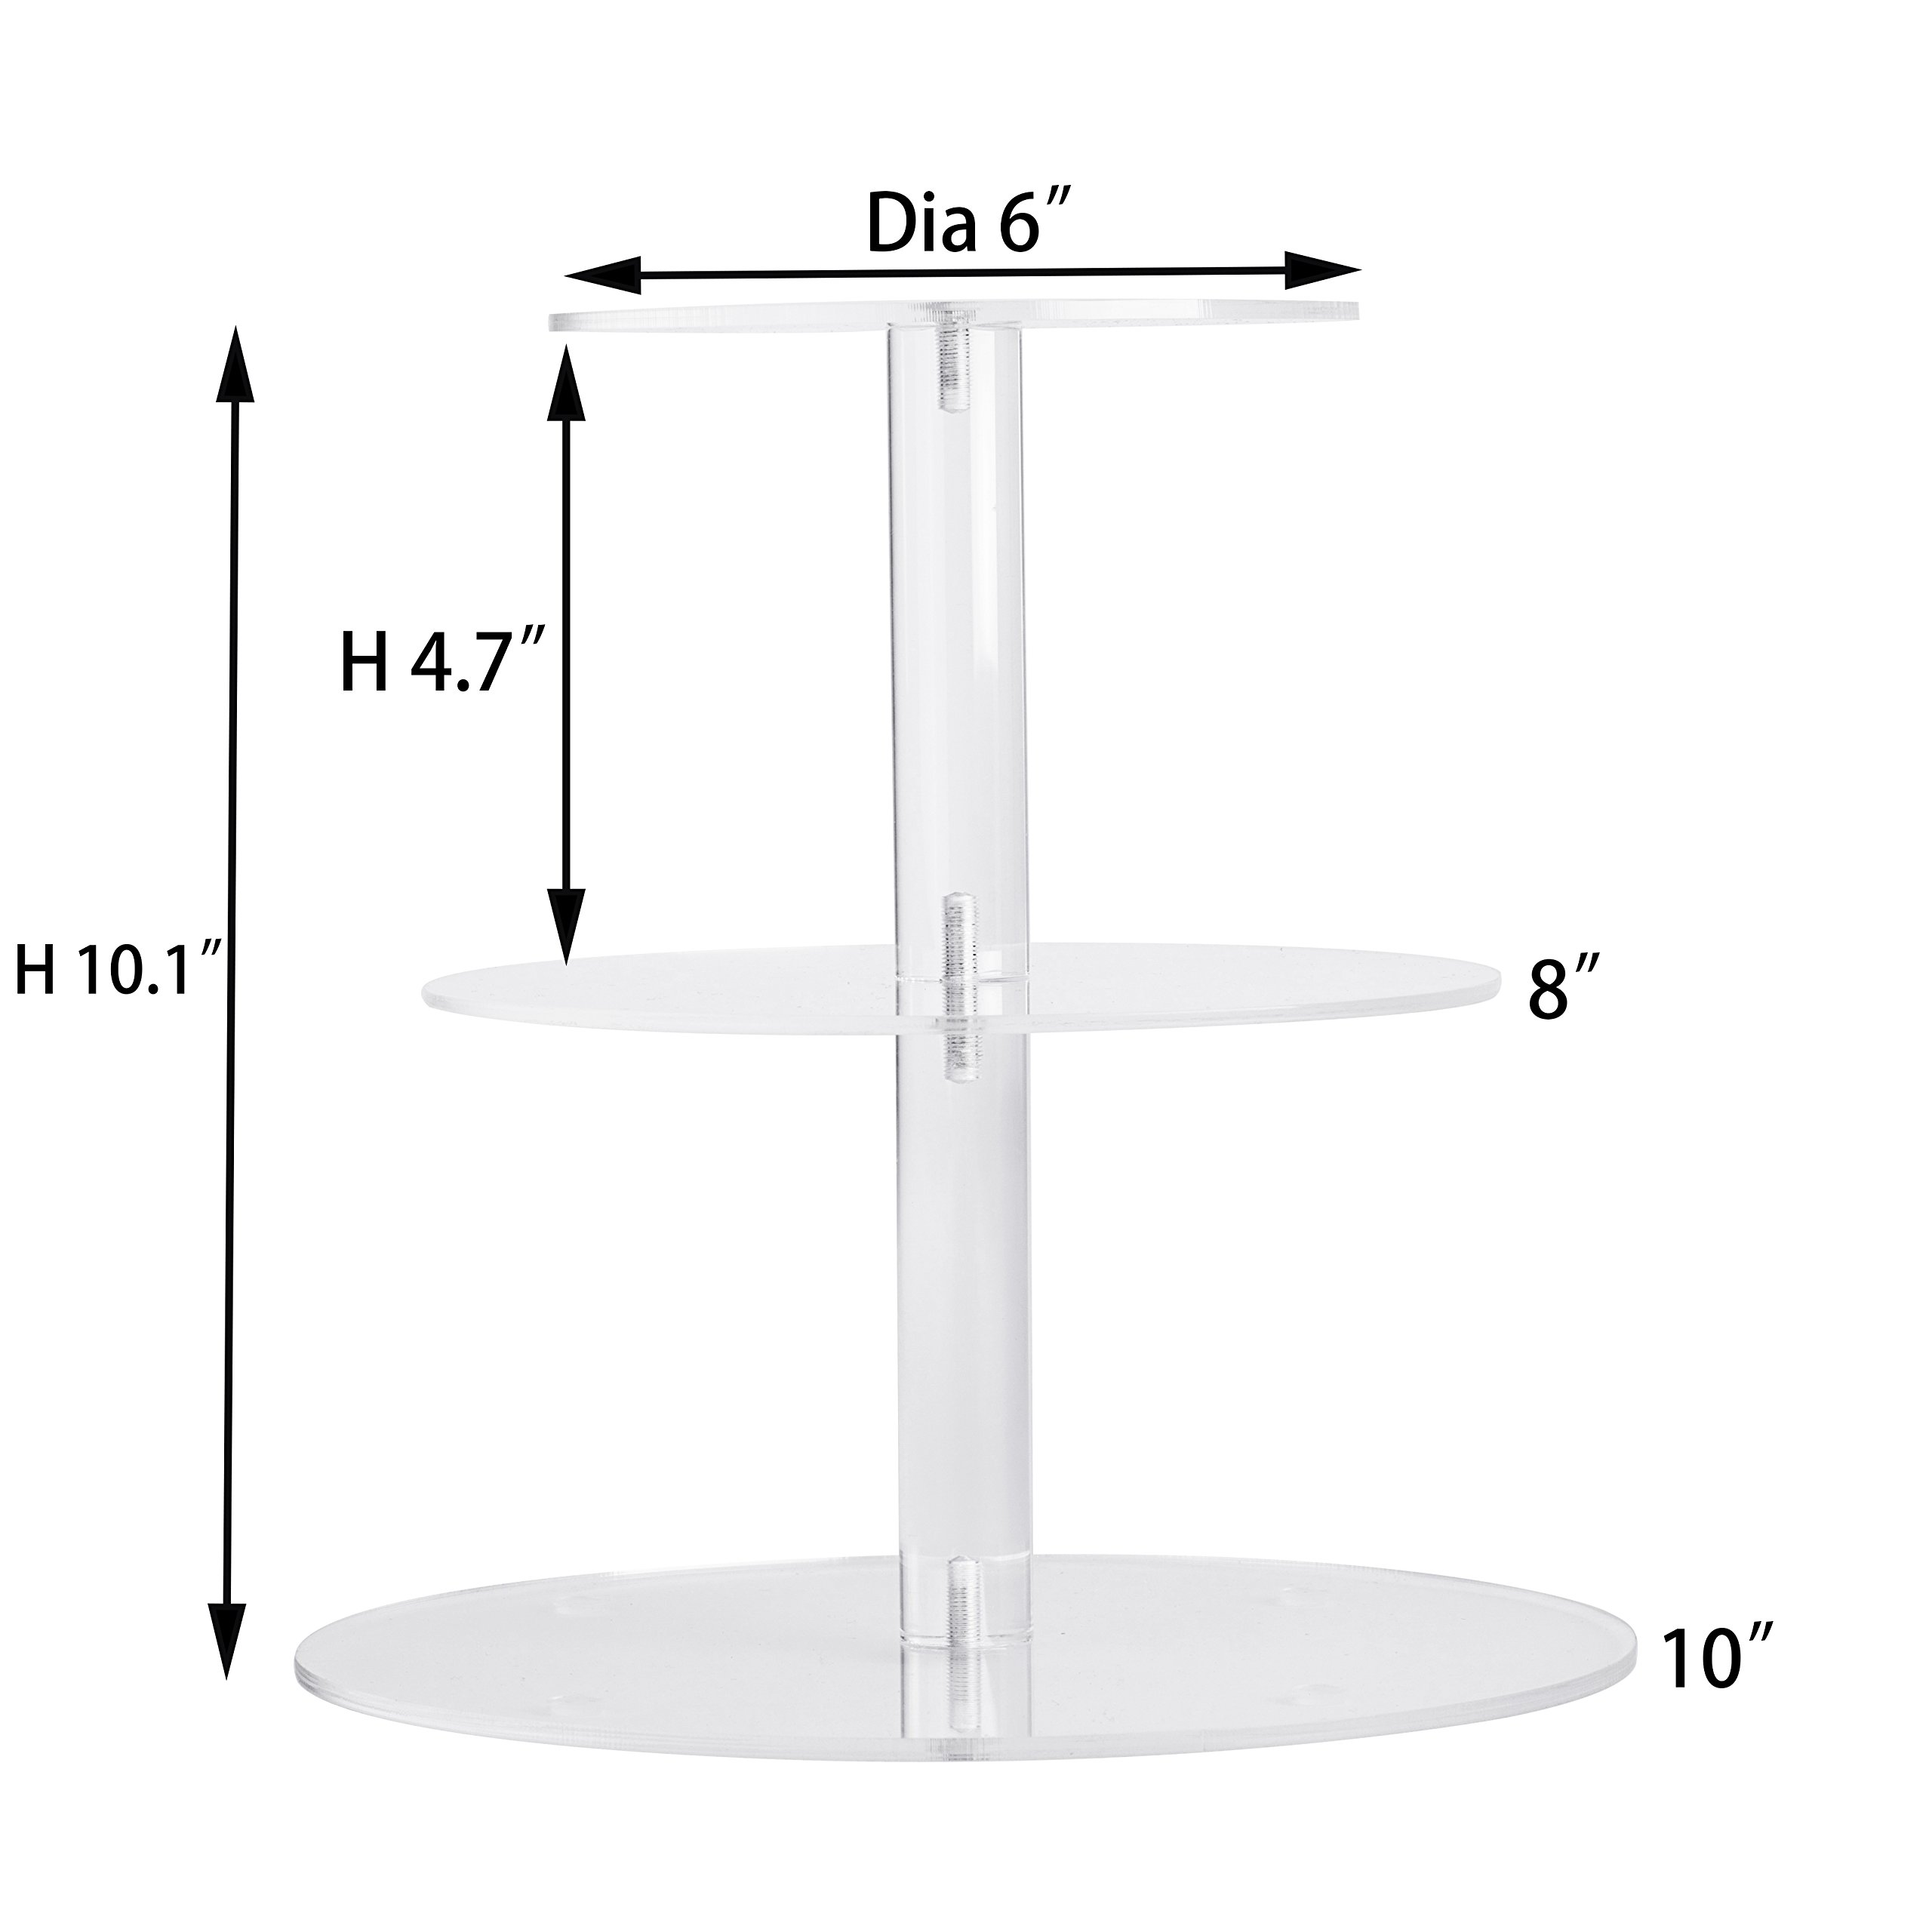 YestBuy 3 Tiers Round Party Wedding Birthday Clear Tree Tower Acrylic Cake Stand (3 Tier Round(4.7'' between 2 layers))­ by YestBuy (Image #2)